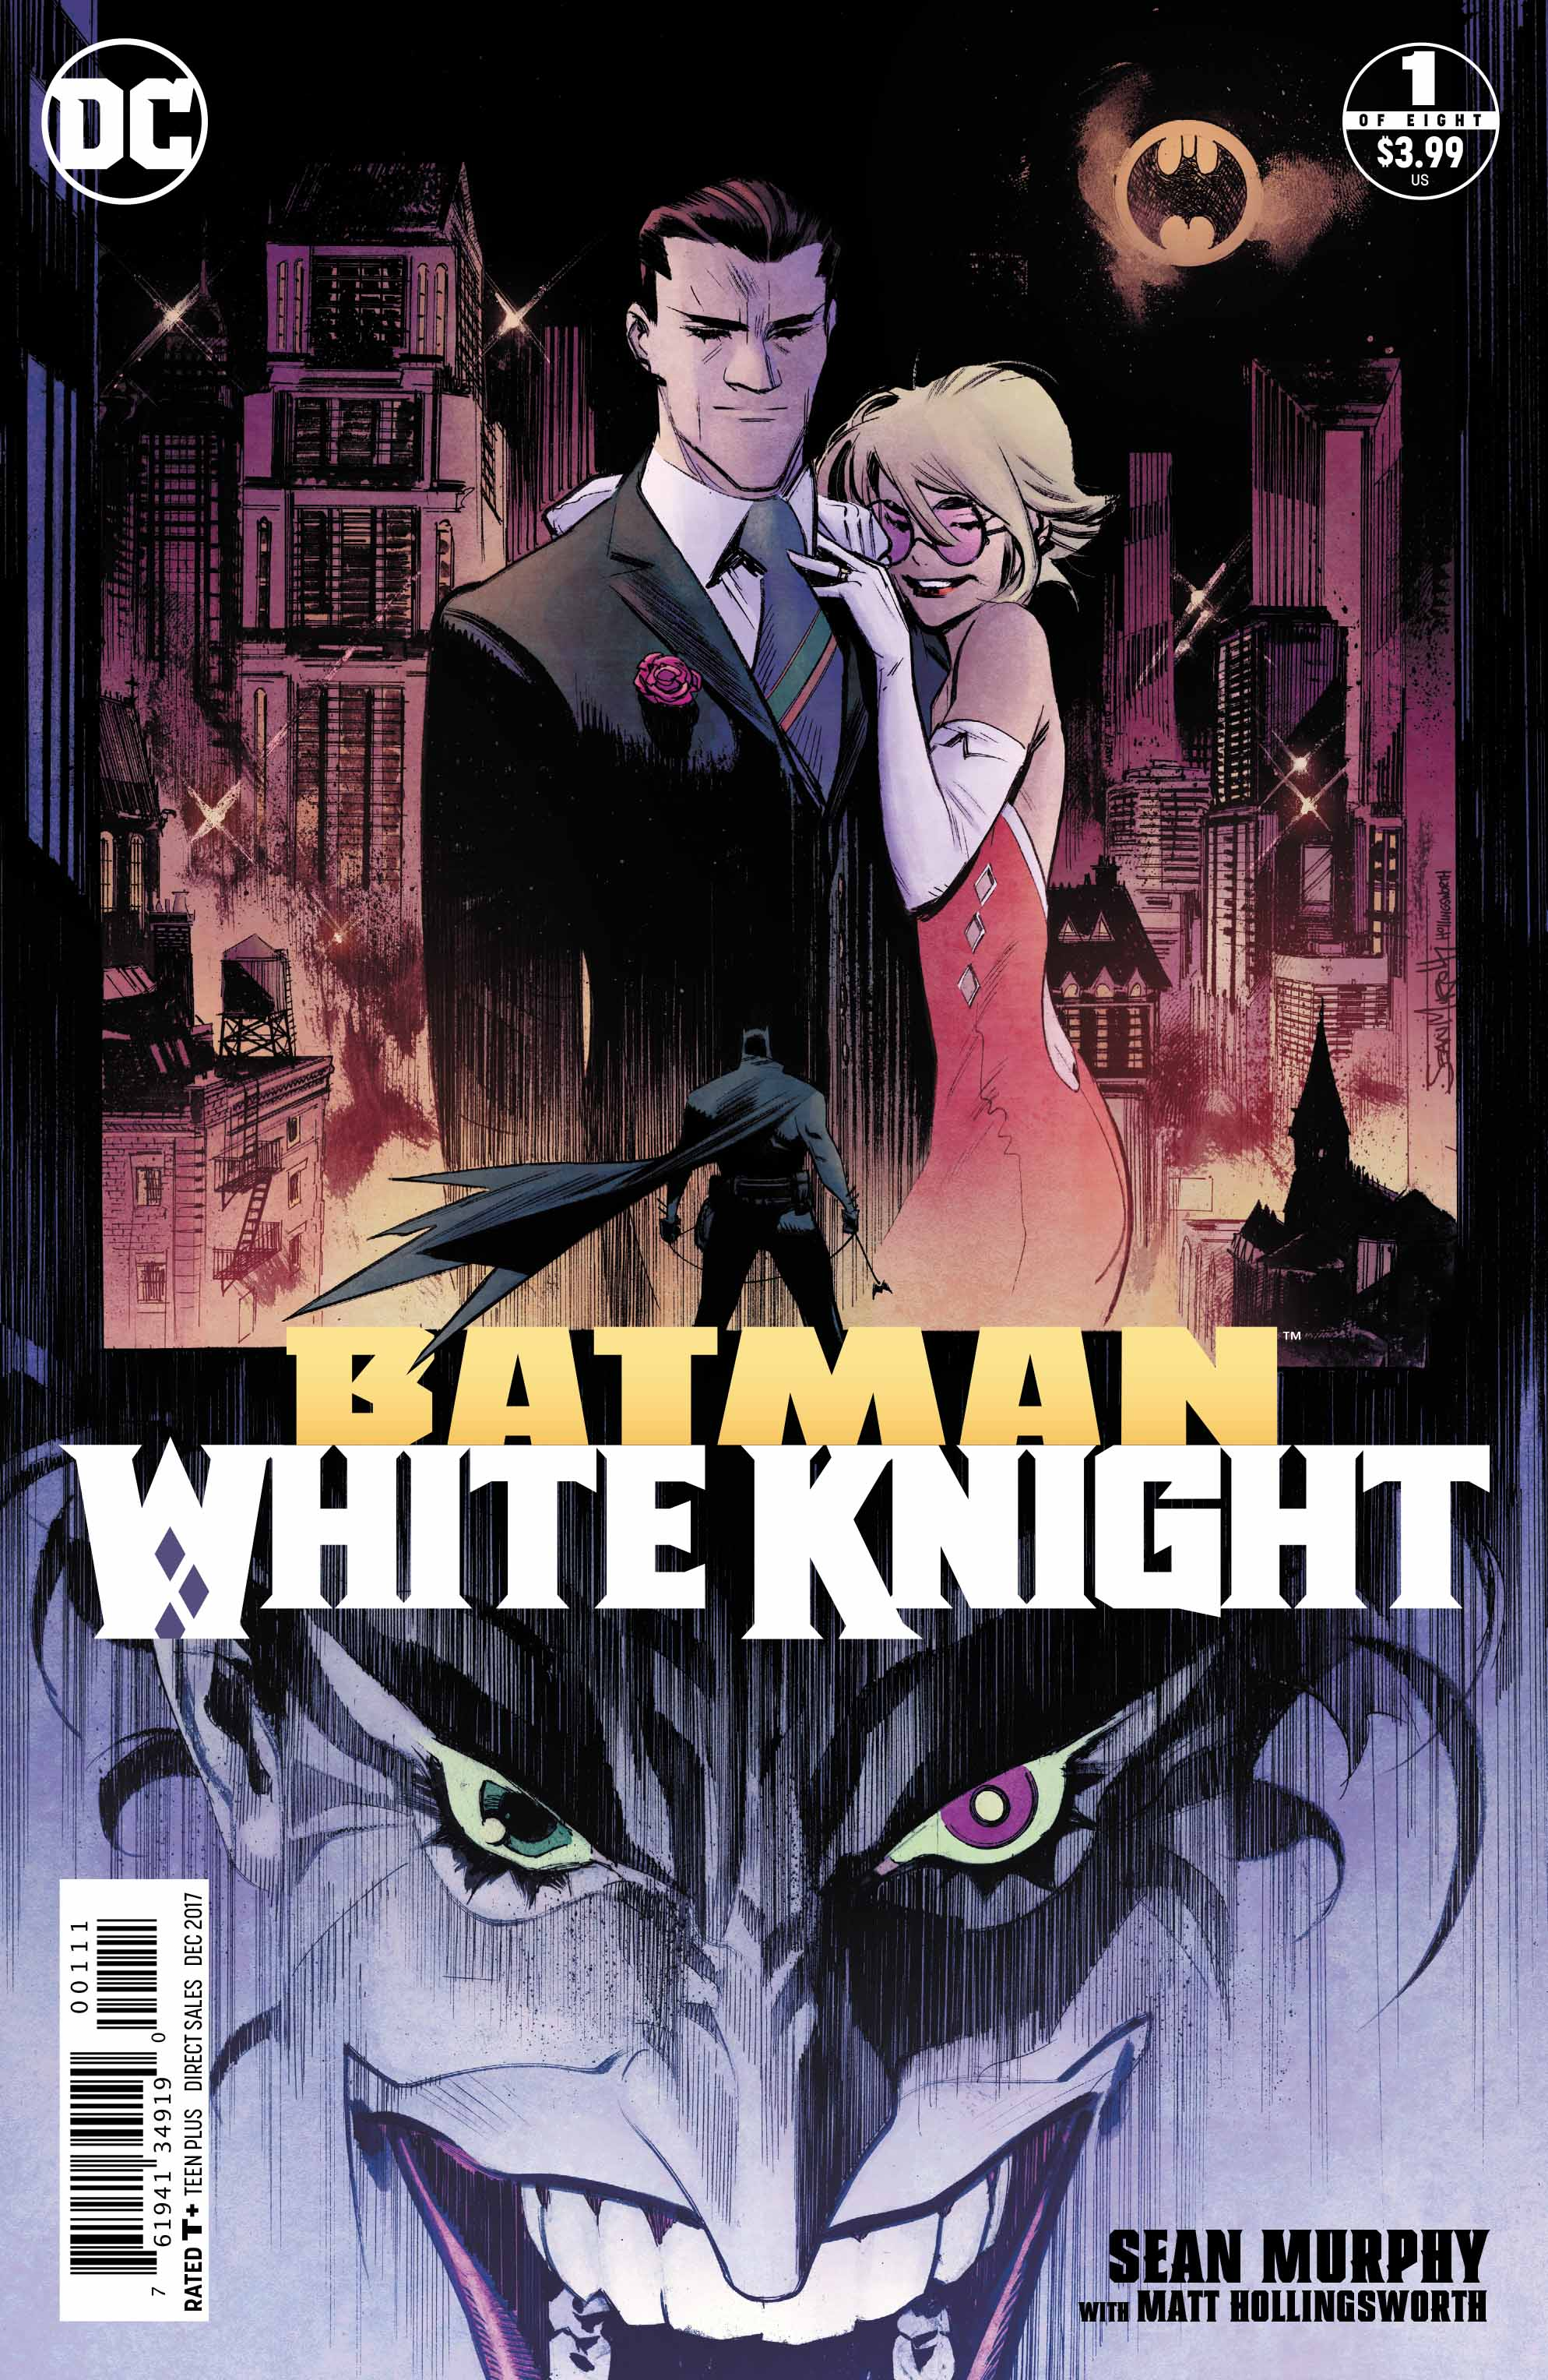 Batman: White Knight #1 Review